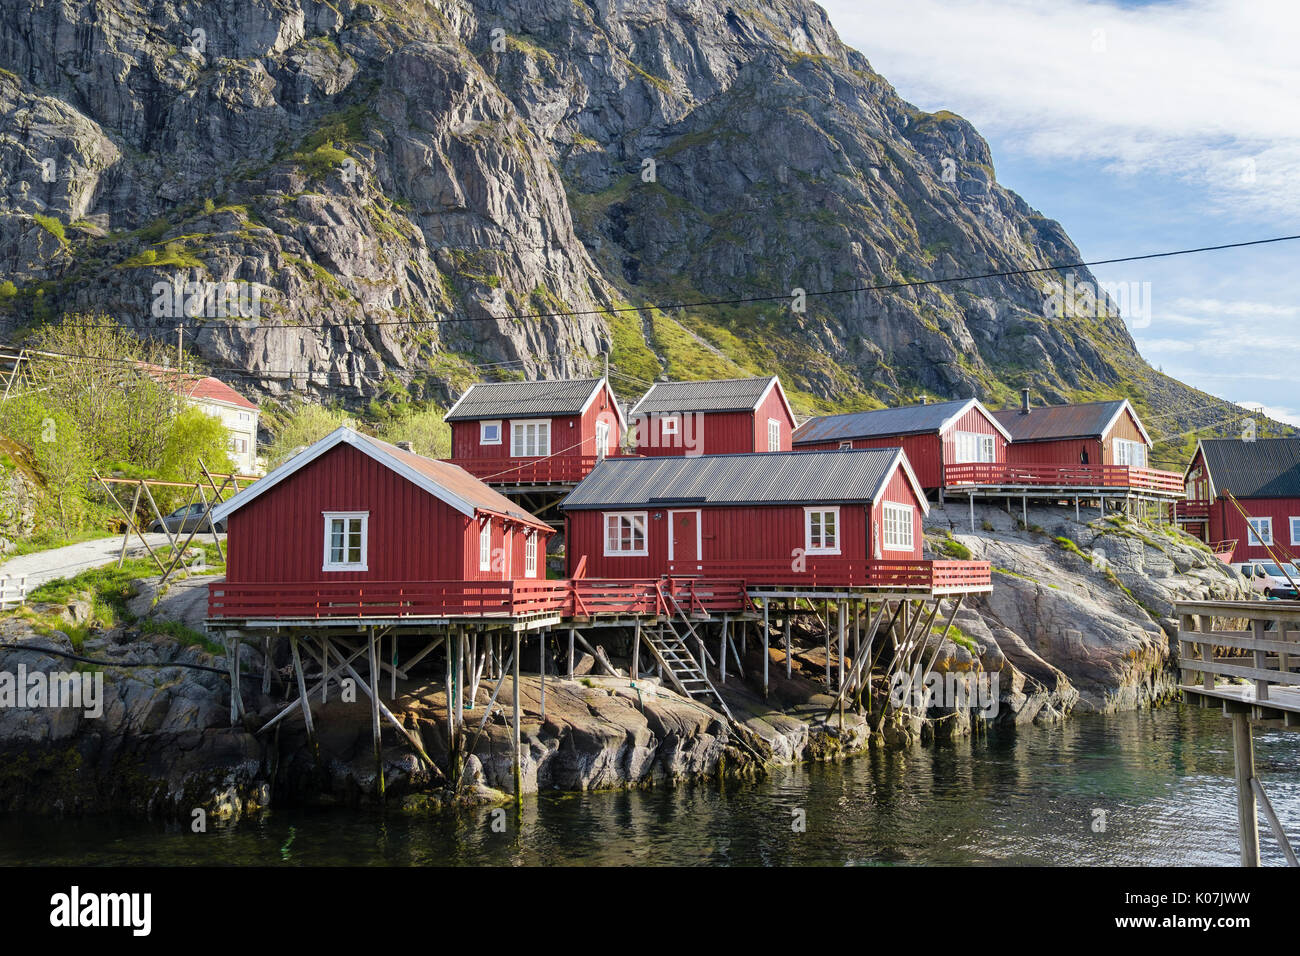 Red wooden rorbus fishermen's huts and buildings on stilts by water in fishing village of Å, Moskenes, - Stock Image